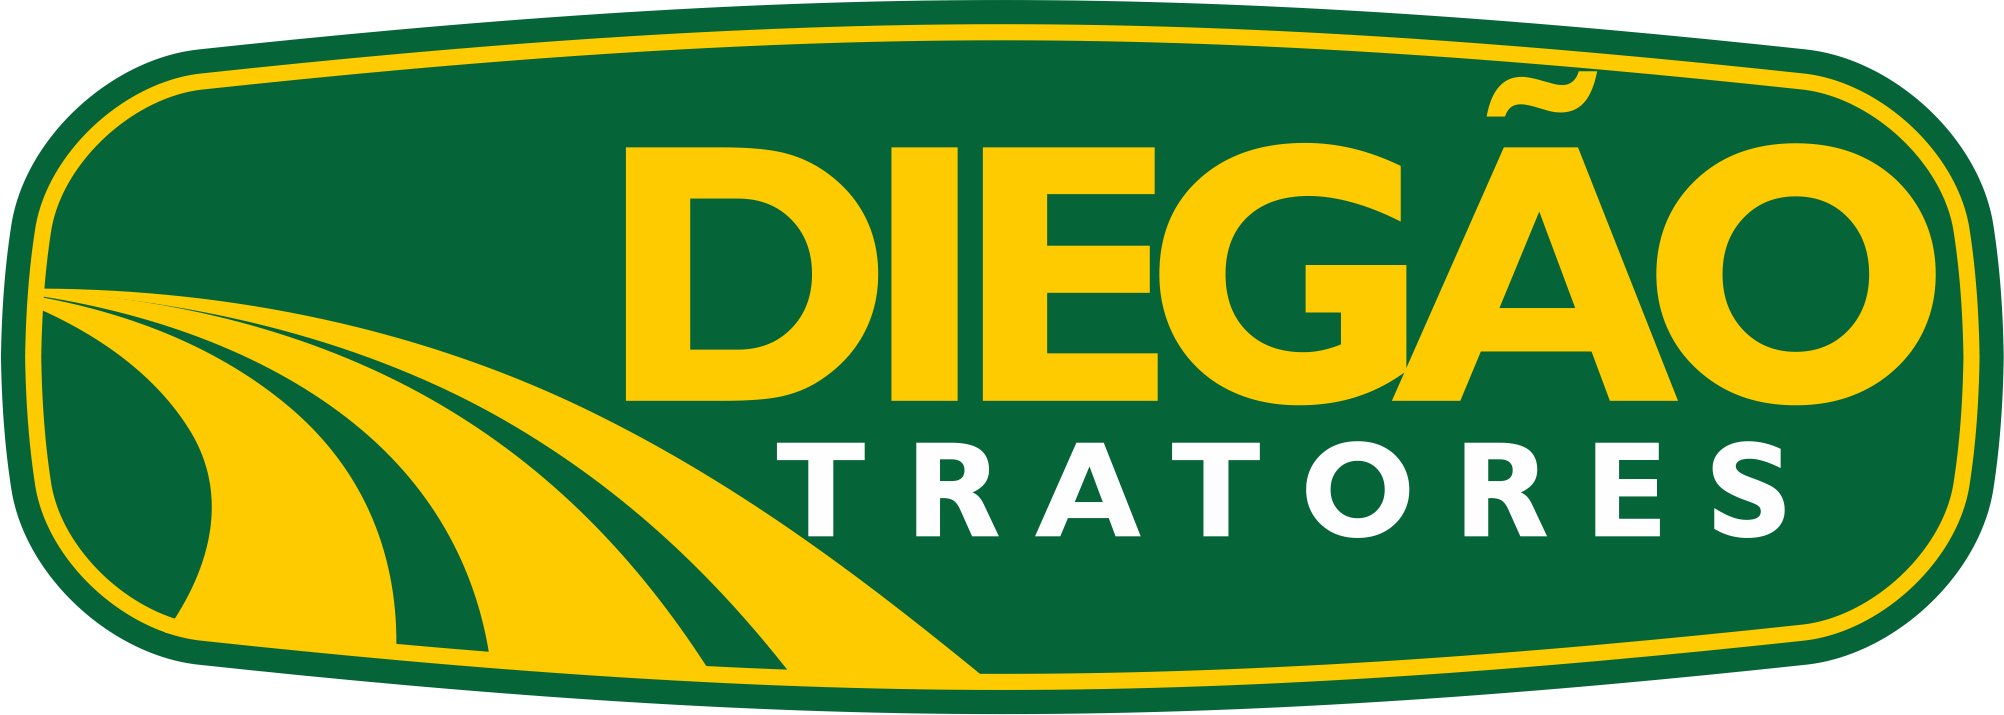 logo diegao tratores